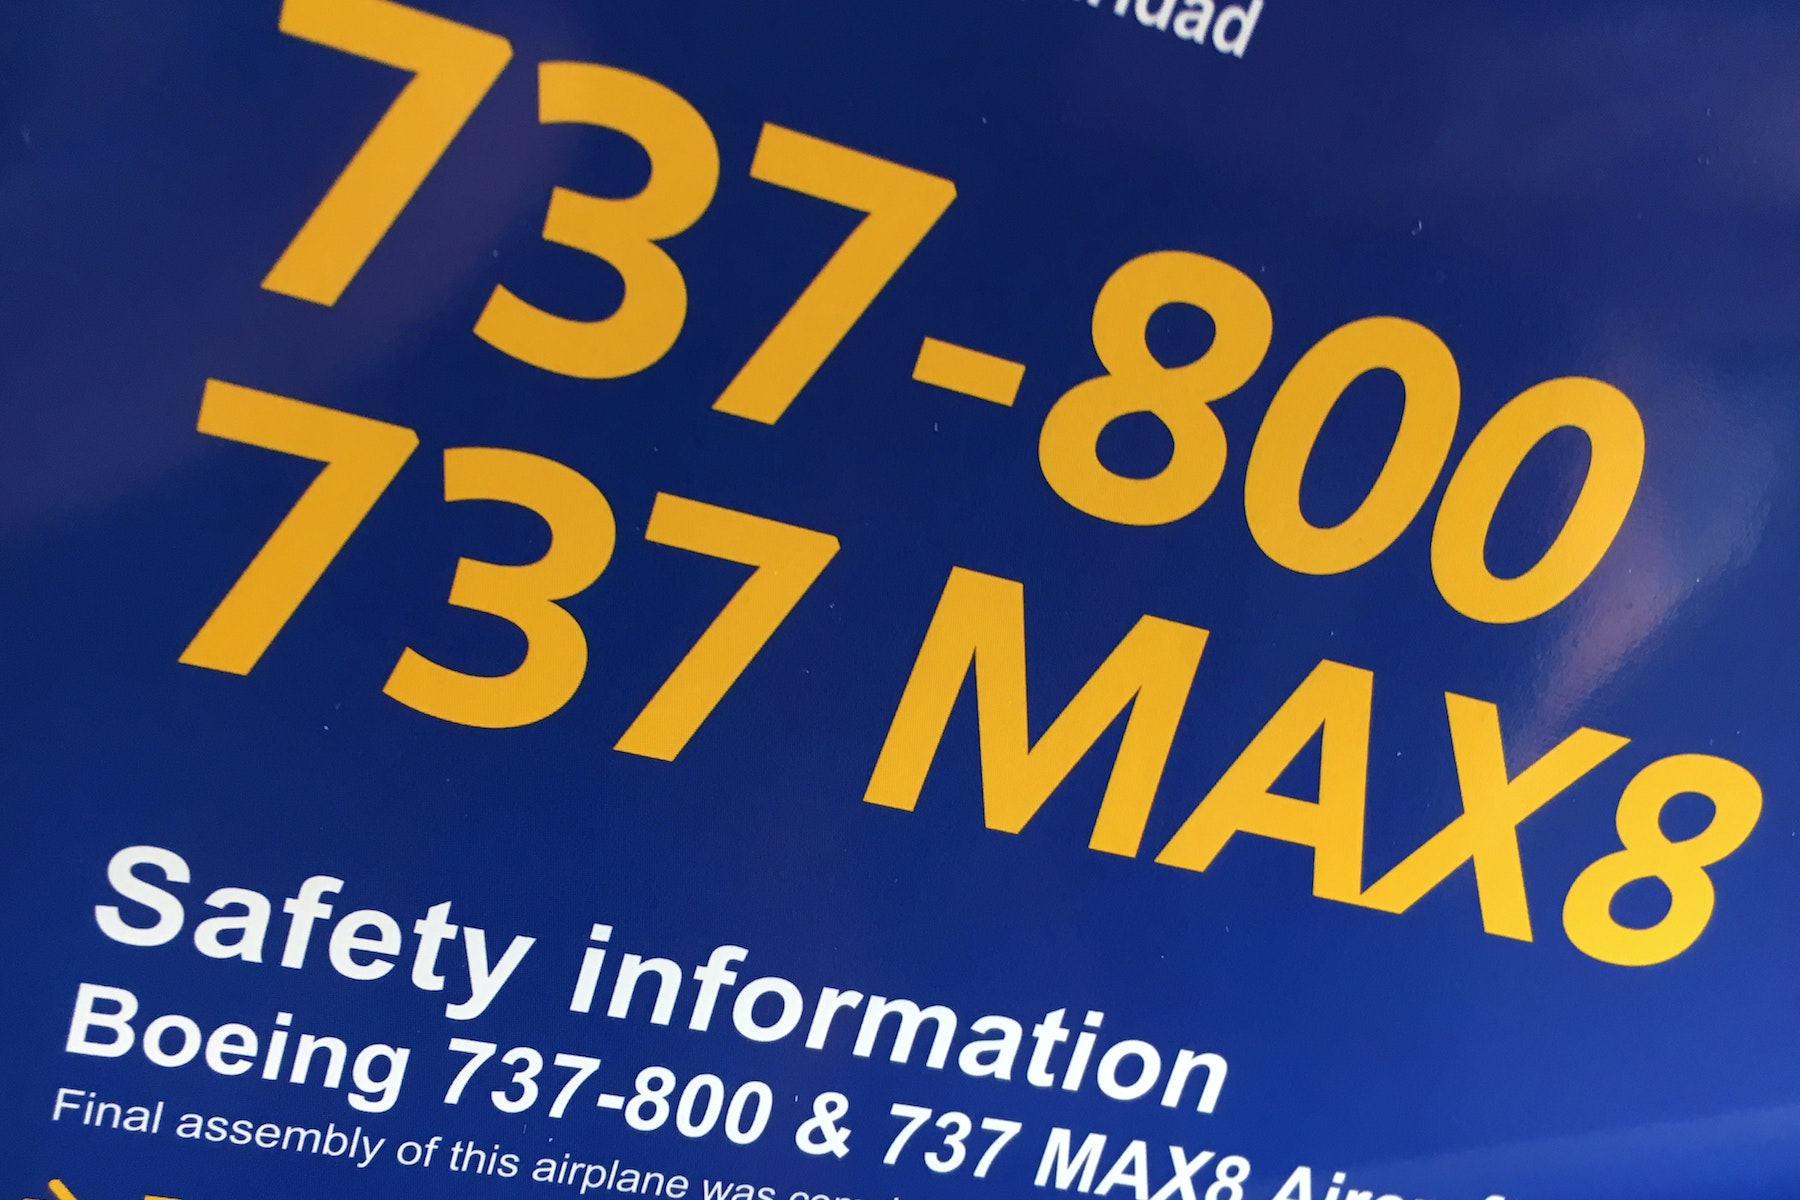 Southwest has informed its passengers that if they see this safety information card on their plane during the grounding, it doesn't mean they are flying on a Boeing 737 Max, which shares a card with the 737-800.